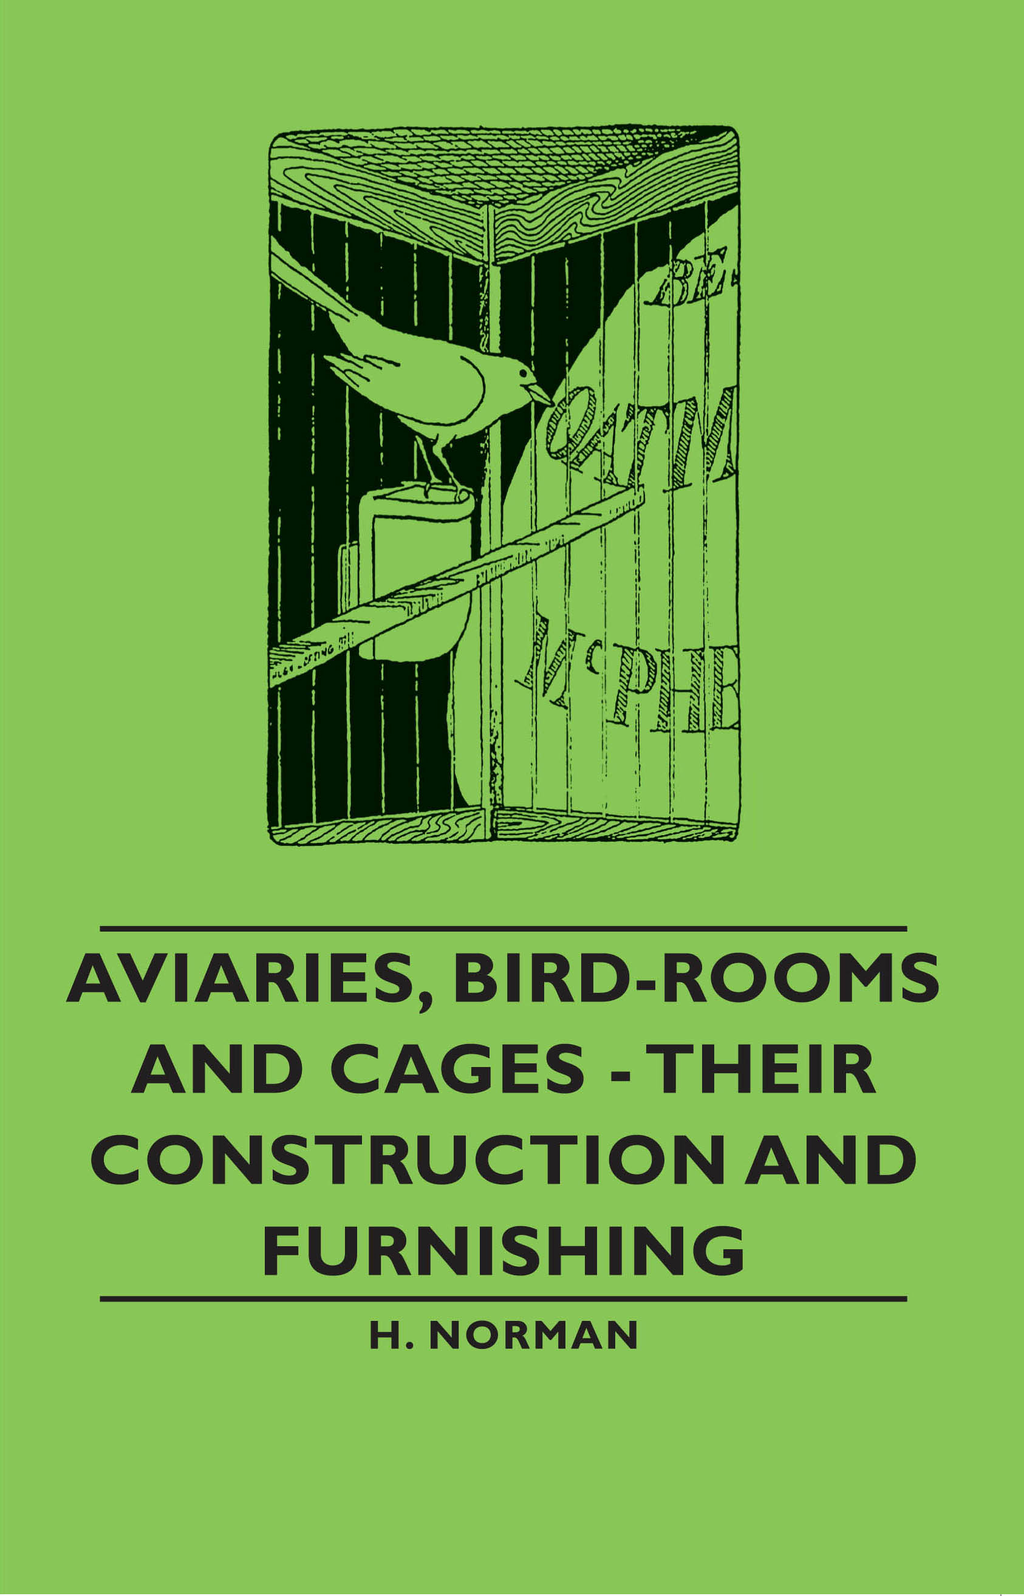 Aviaries, Bird-Rooms and Cages - Their Construction and Furnishing By: H. Norman